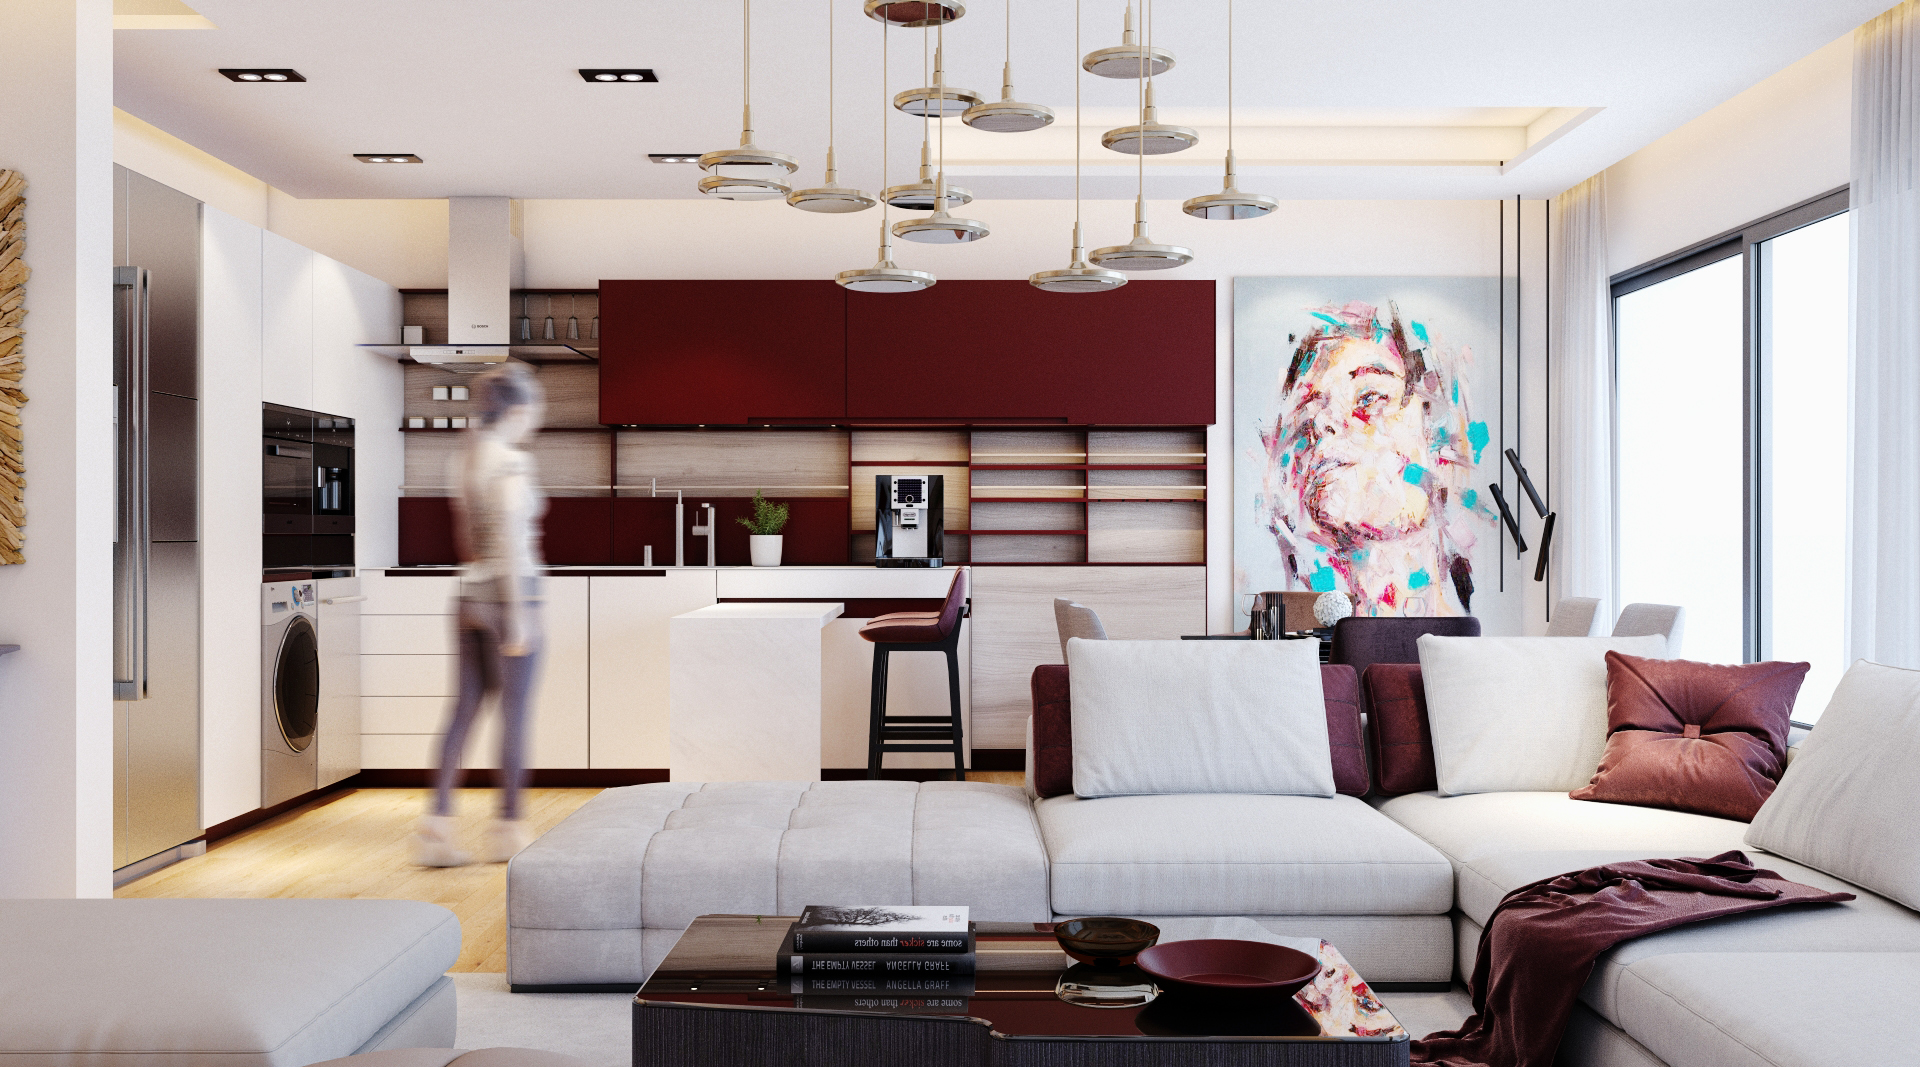 Ambra Heights 2-Bedroom Apartments by AAD Real Estate in Kilimani